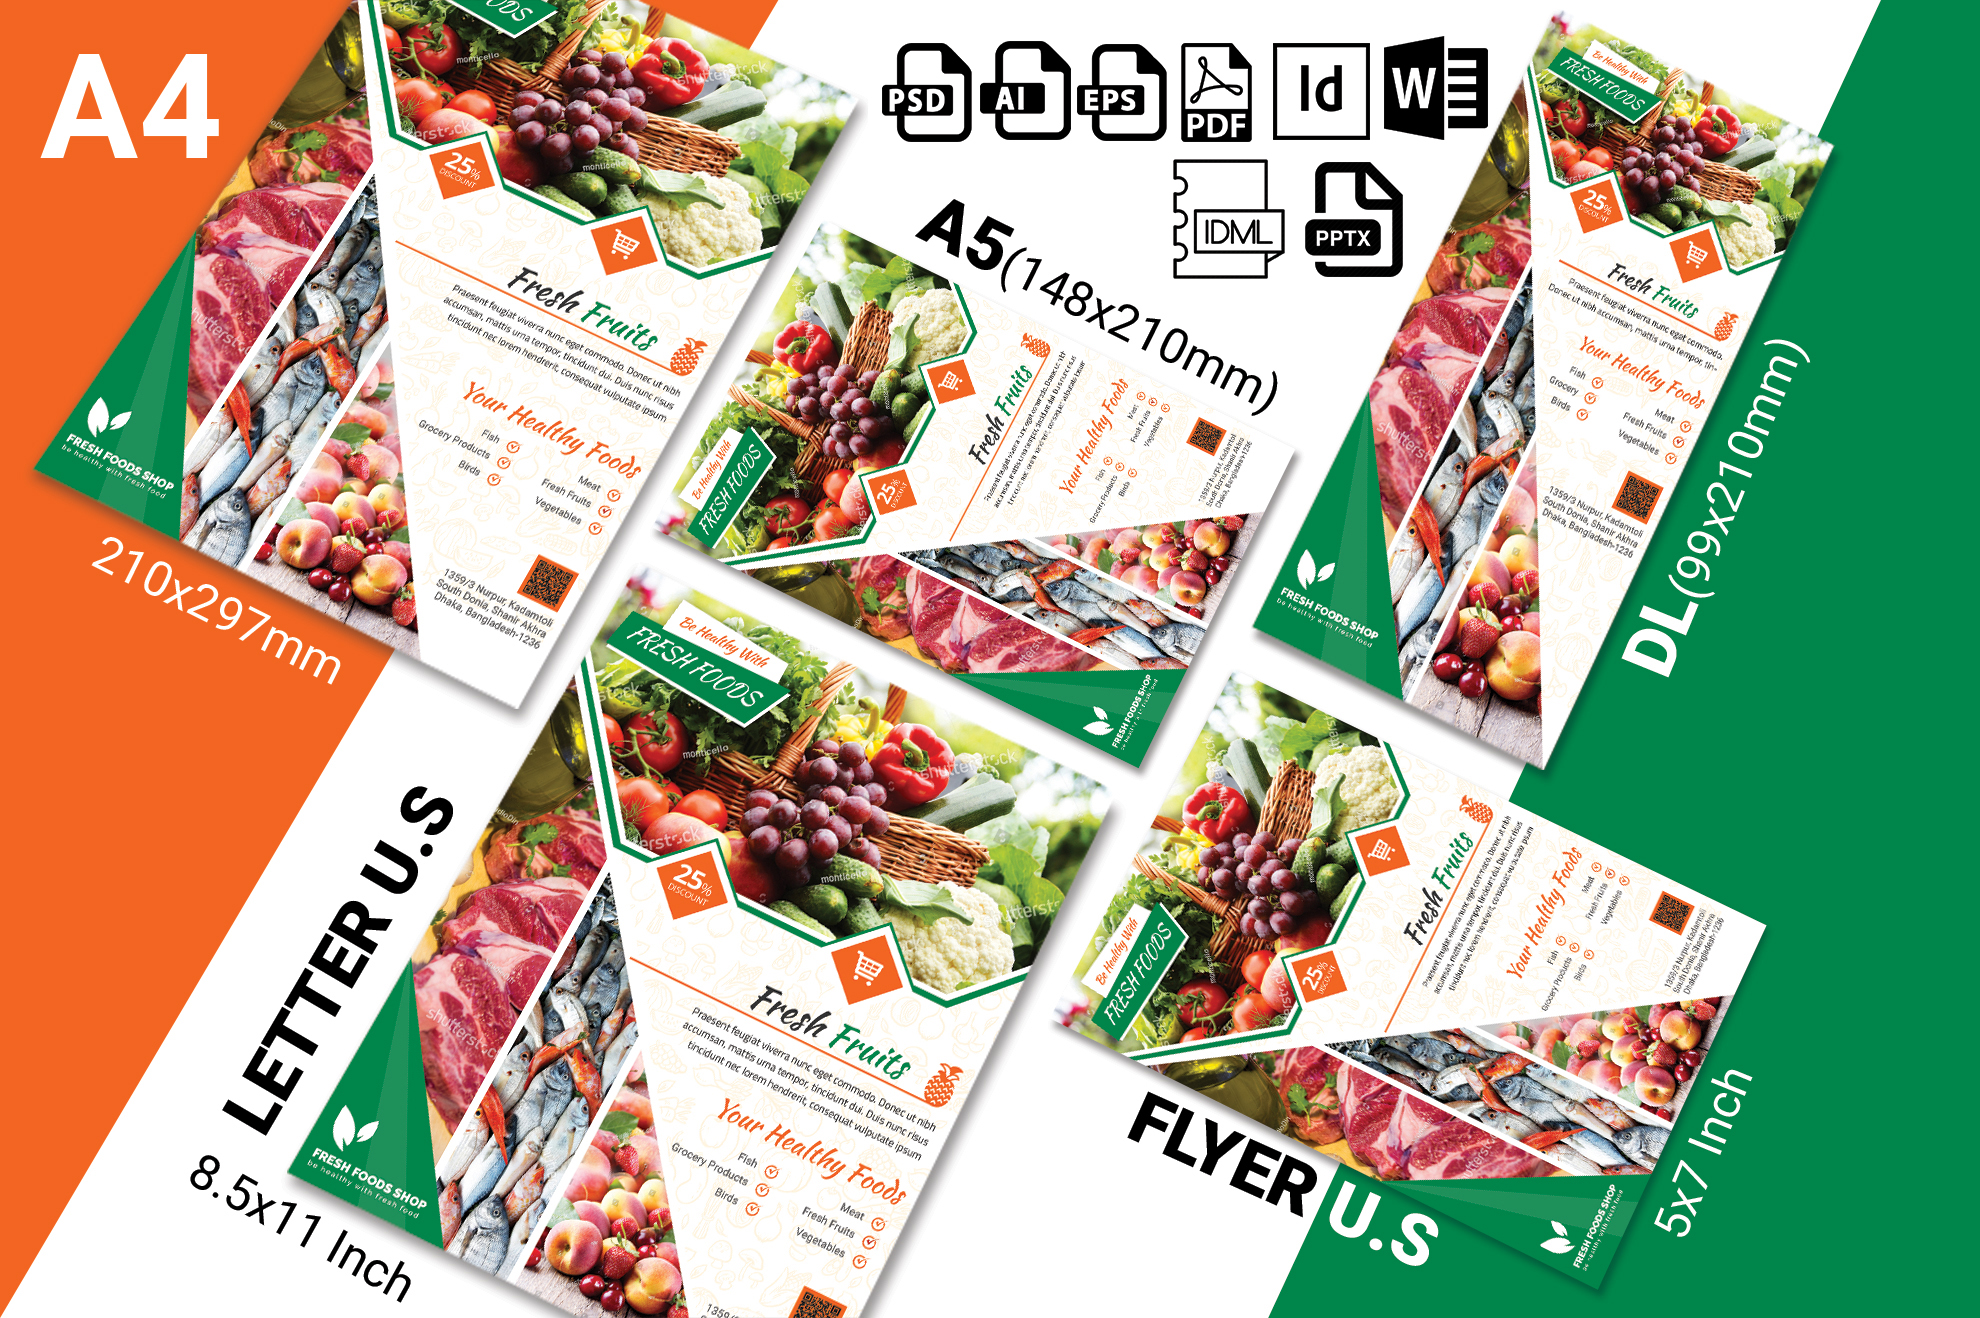 Fresh Food Grocery Shop Flyer Vol-02 example image 2